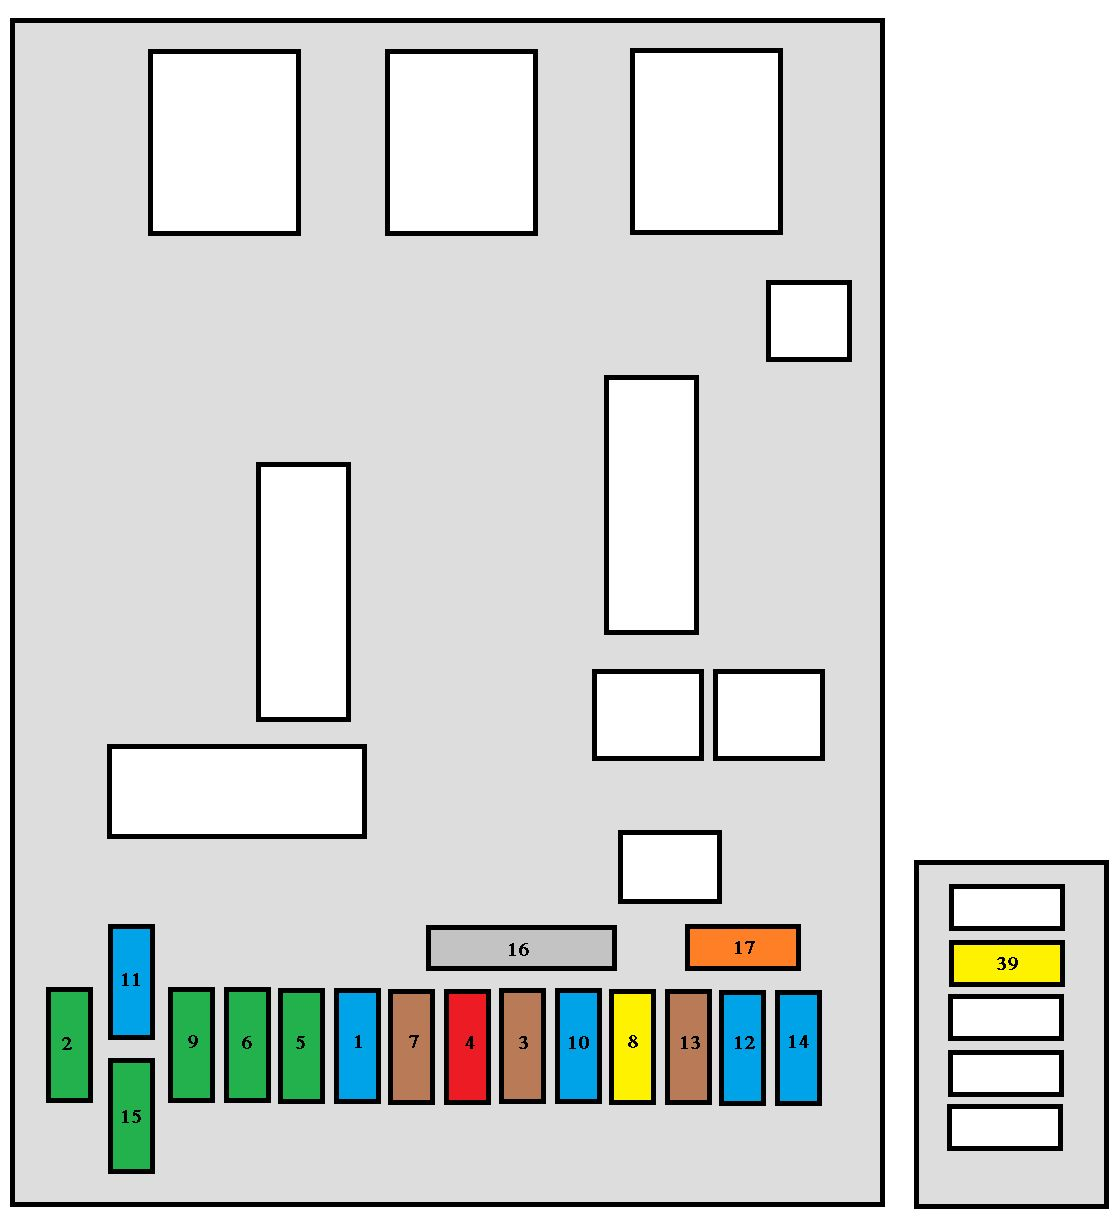 peugeot 407 fuse box map wiring diagram Peugeot 307 2005 peugeot 407 fuse box diagram wiring diagrampeugeot 307 fuse box fault 2 13 malawi24 de \\